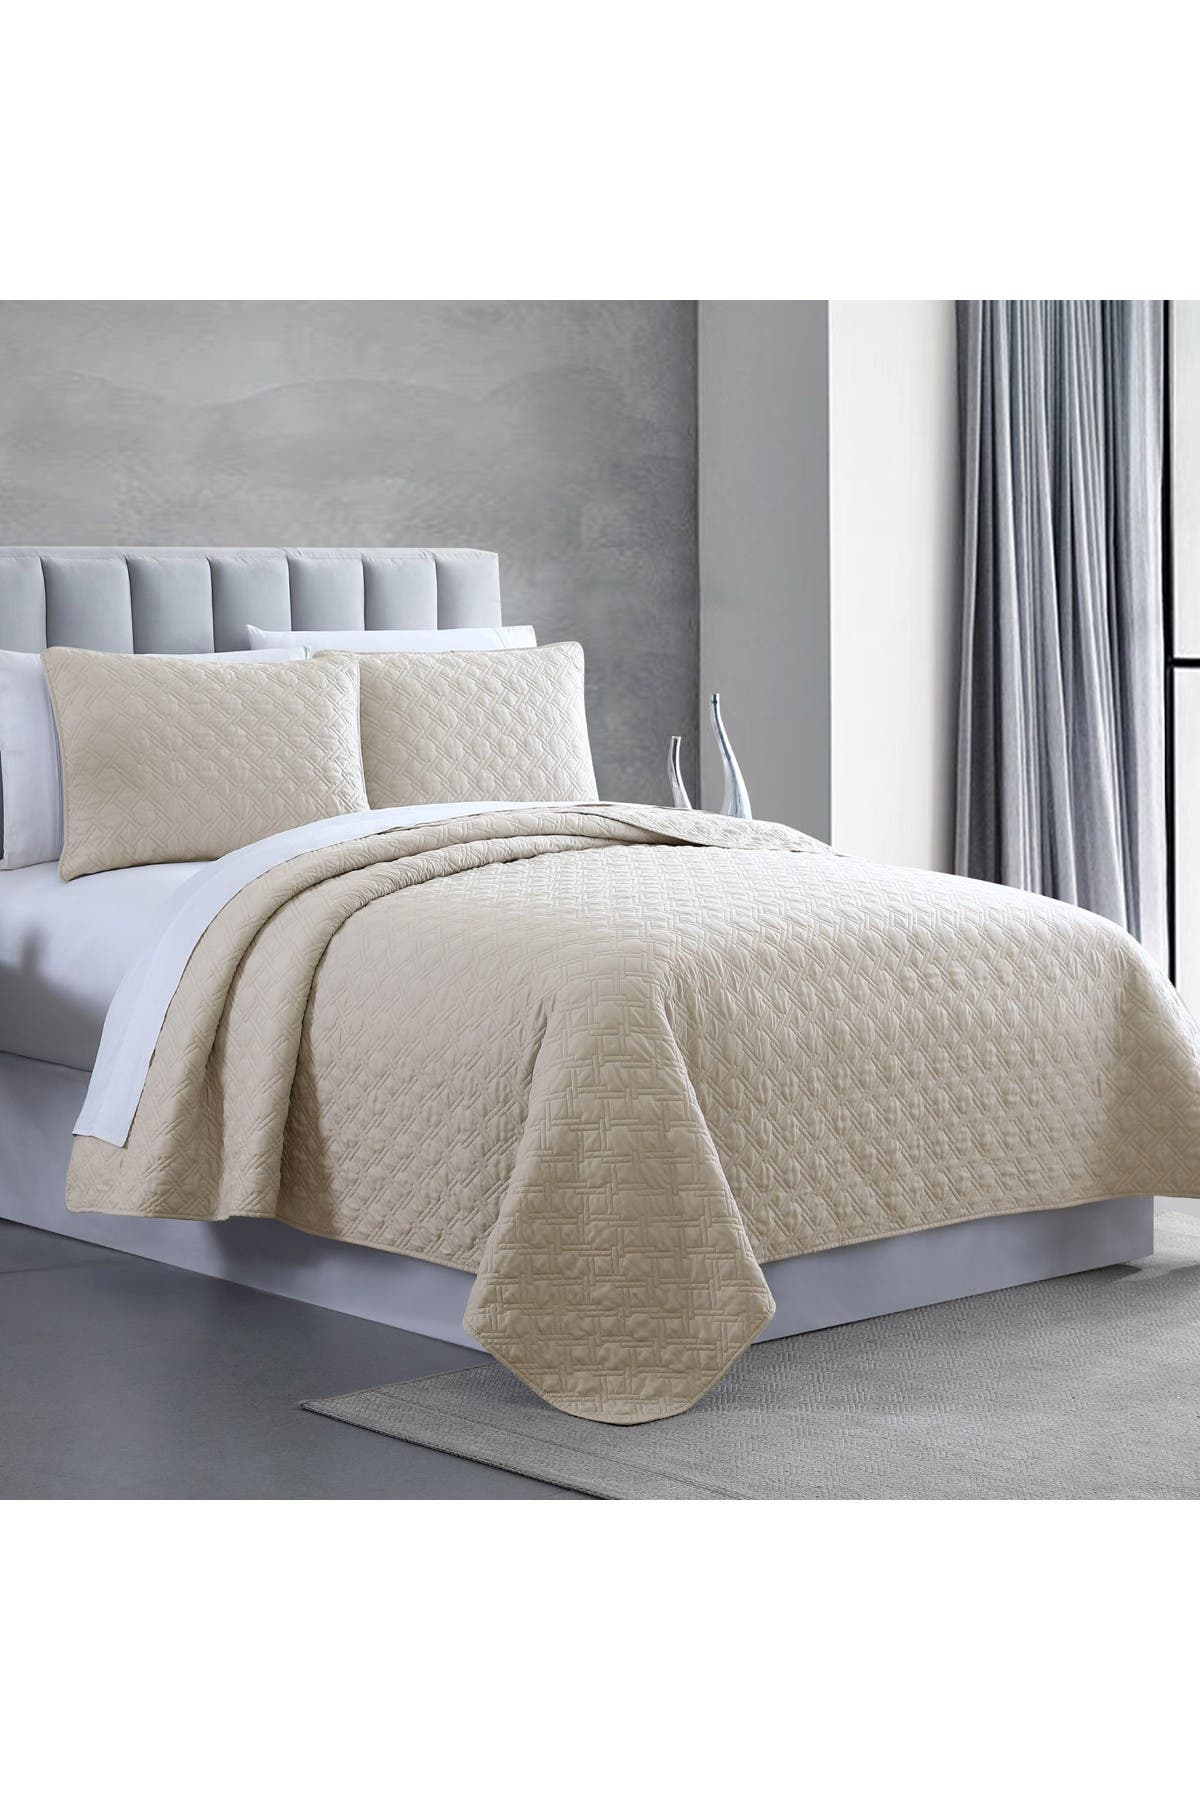 Image of Modern Threads King Enzyme Washed Diamond Link Quilted Coverlet 3-Piece Set - Almond